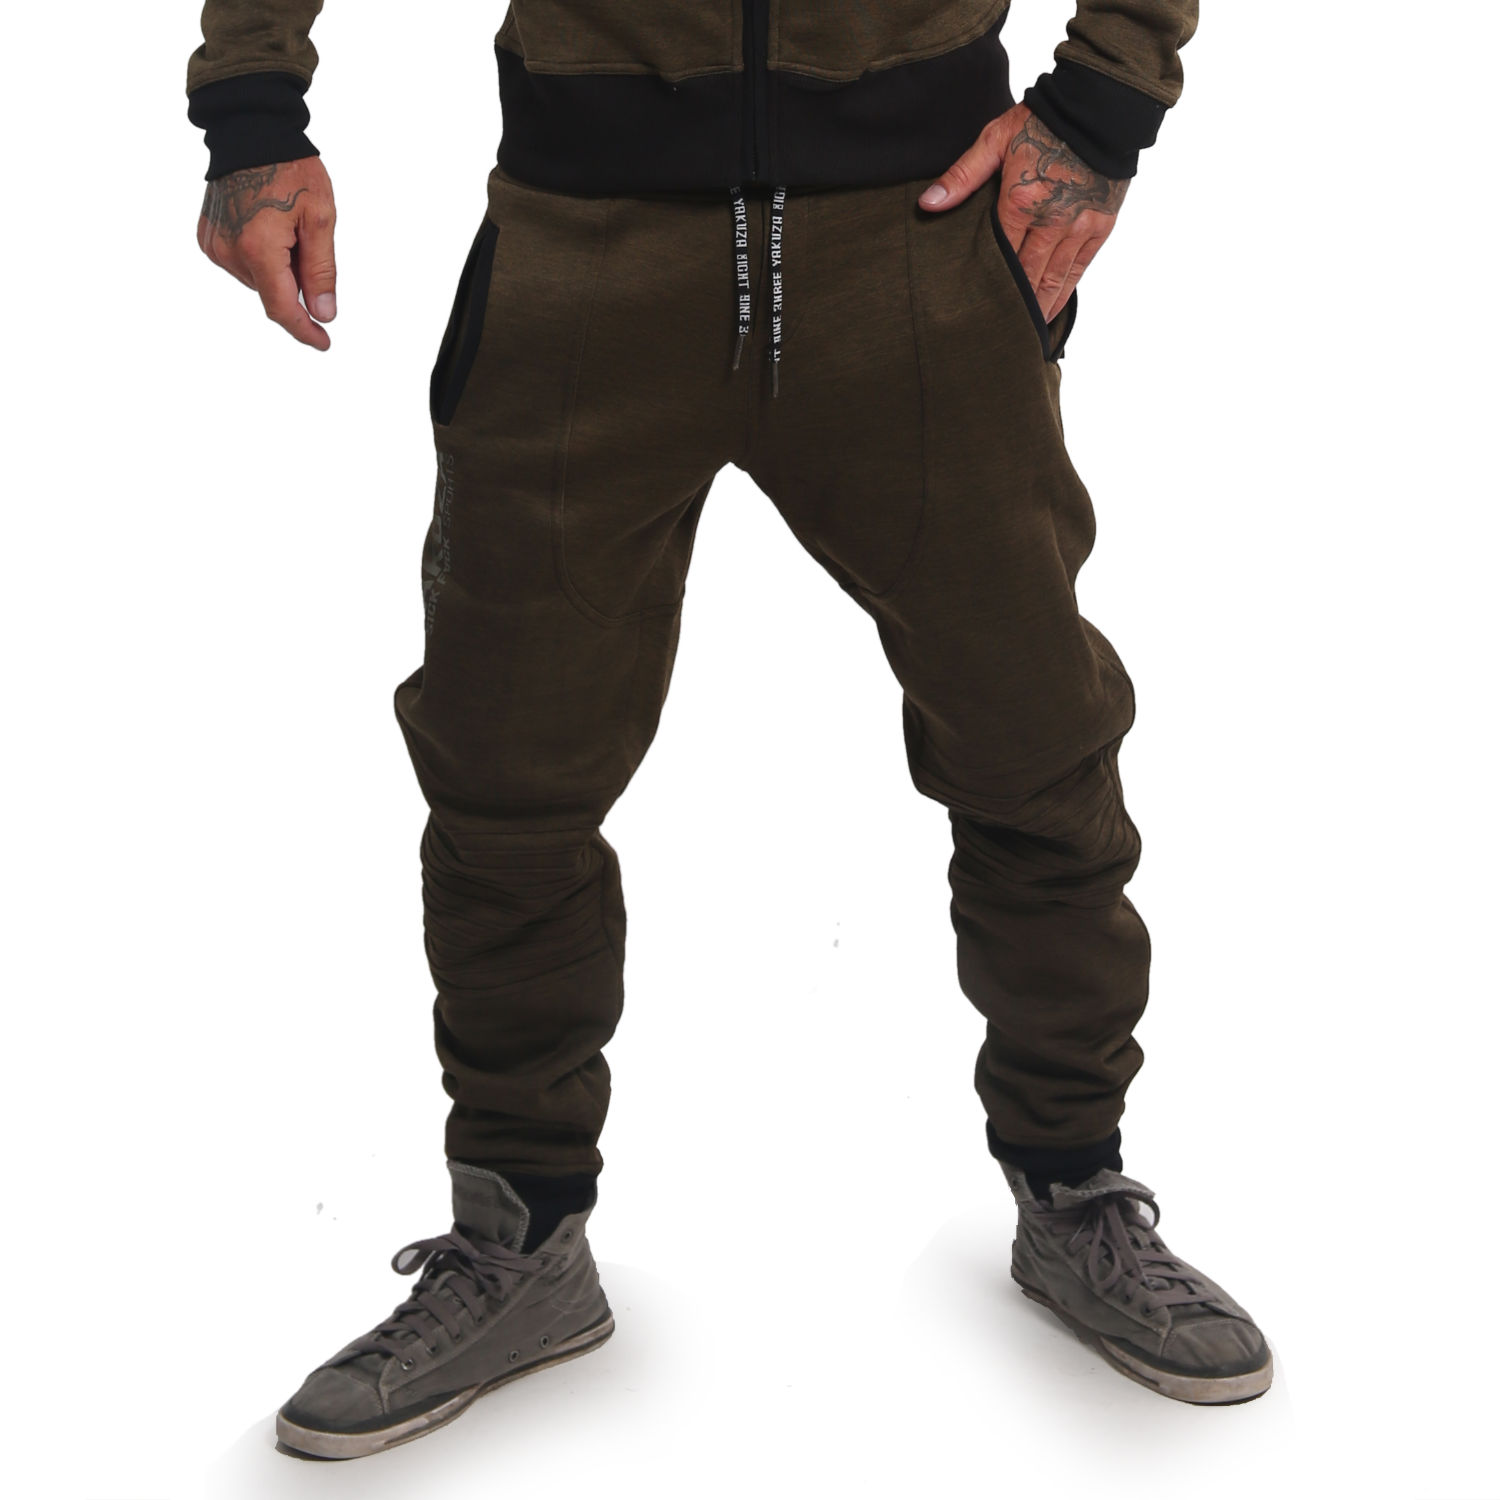 S&F Sports Line Limitless Joggers